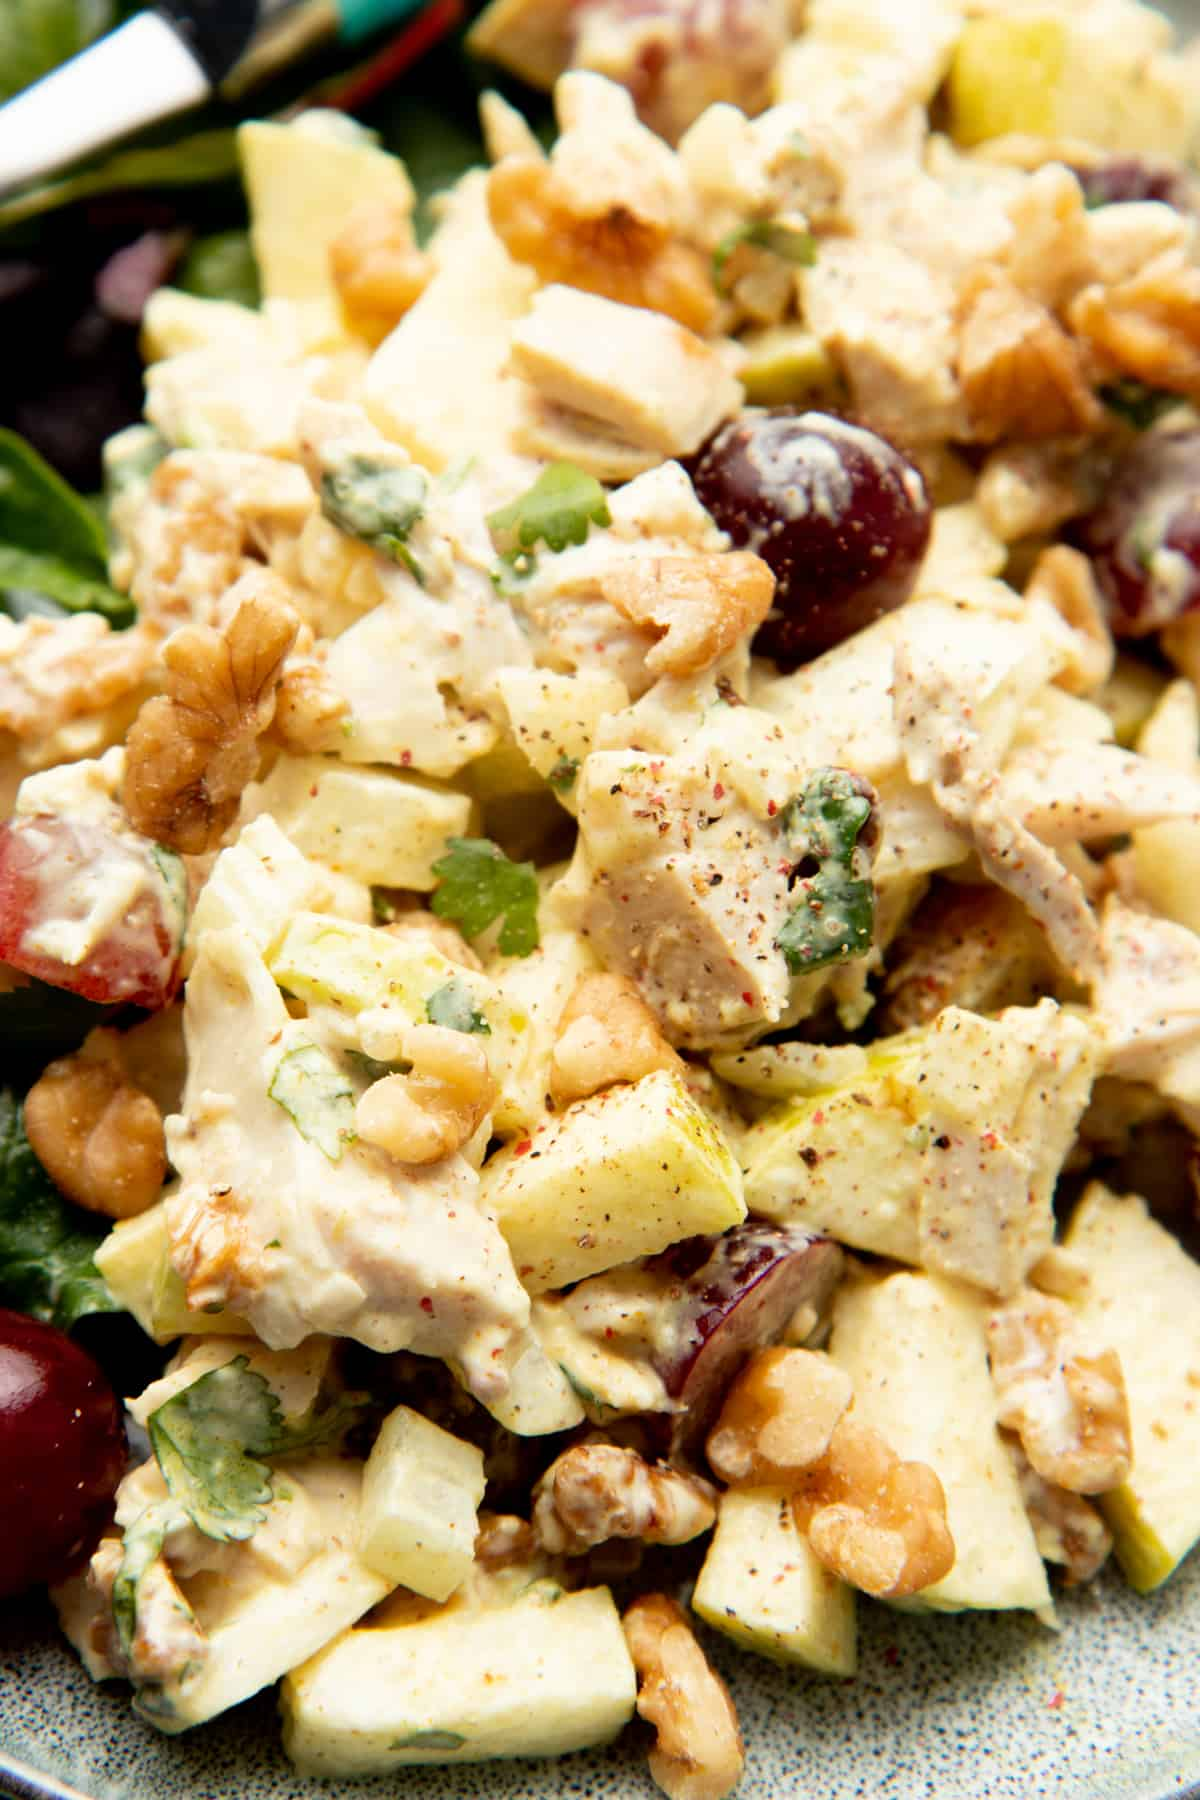 Curry chicken salad includes apples, walnuts, and grapes.